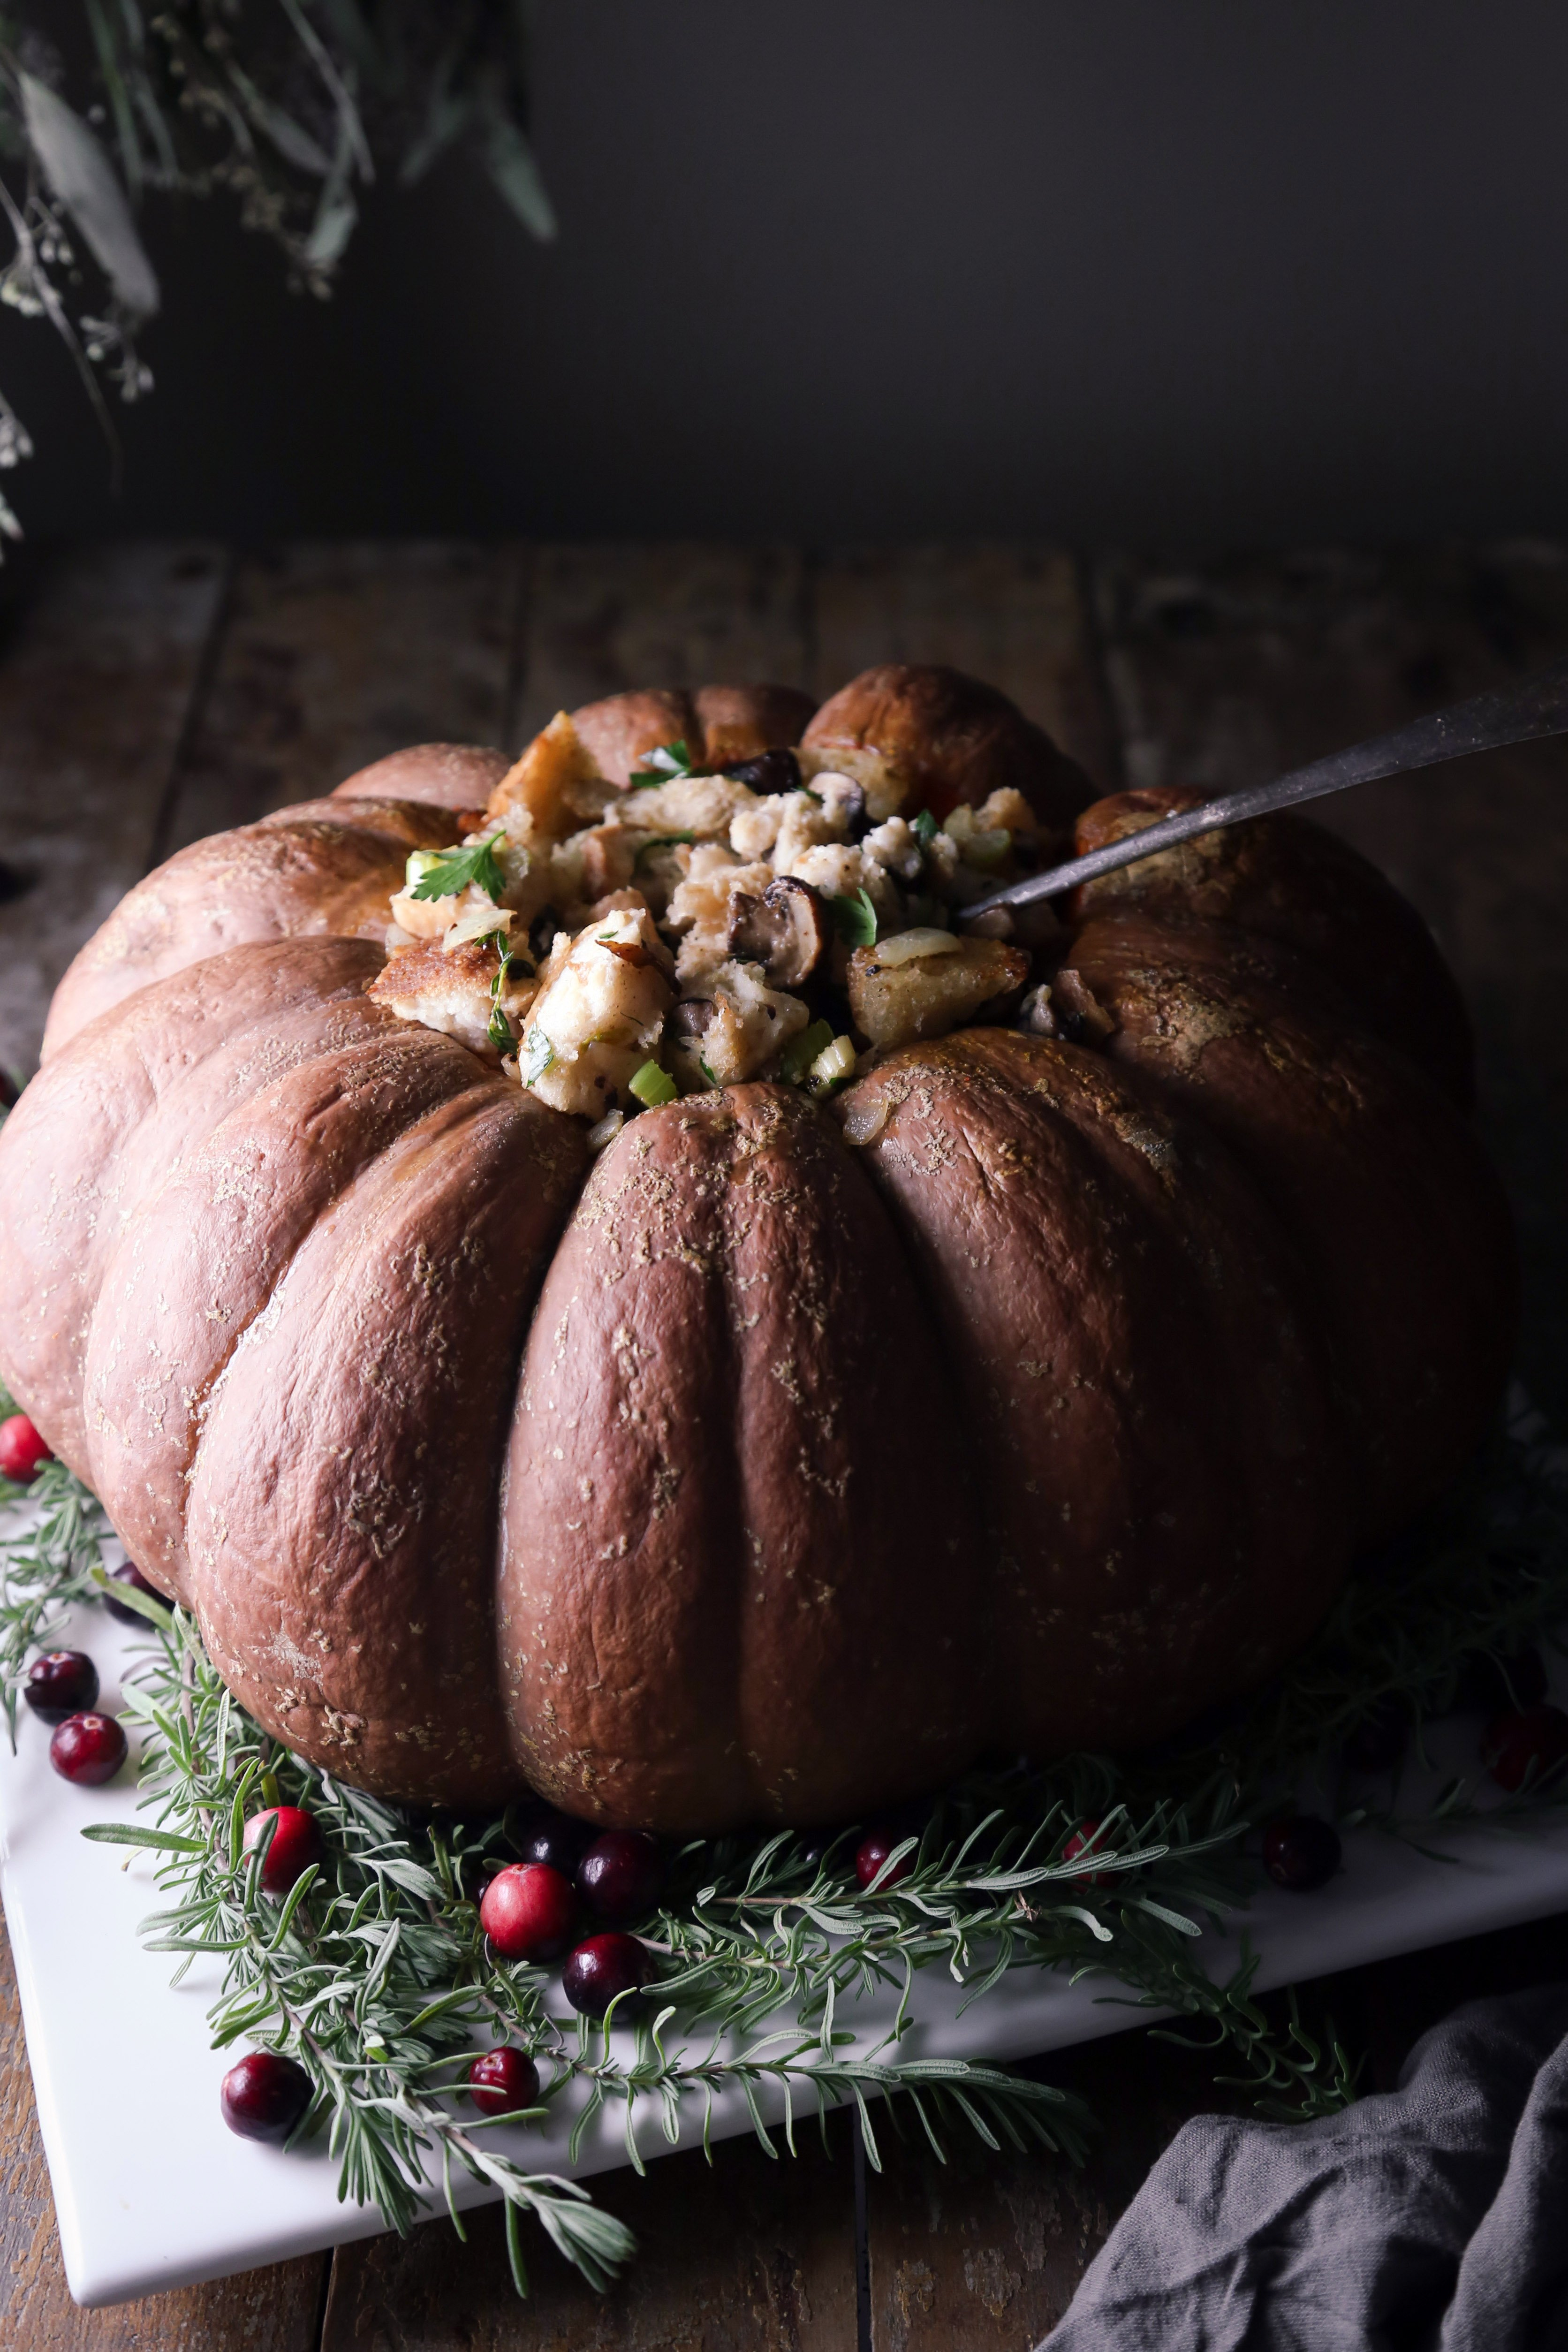 Baked Pumpkin Filled with Sourdough Stuffing | Vegetarian & vegan friendly. Can be easily adapted to be gluten and dairy free.